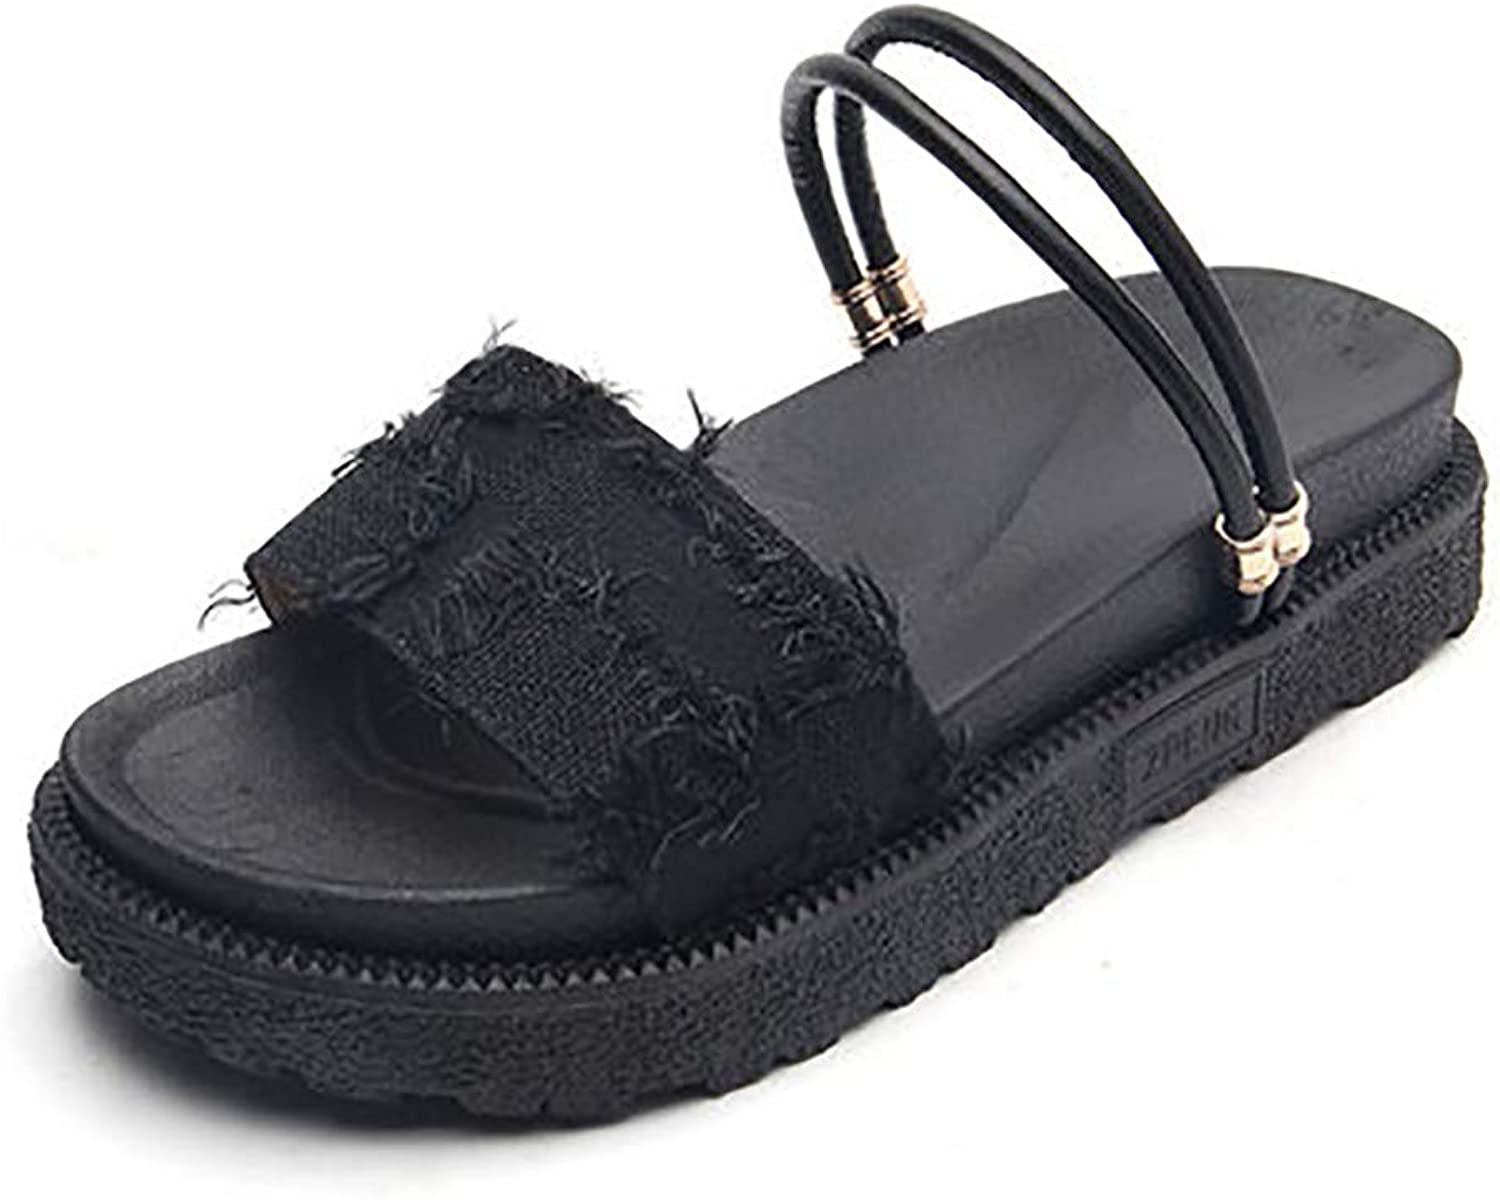 Sandals for Women, Gladiator Sandals for Women Platform Sandals Leisure and Comfort Two Ways of wearing's Summer shoes